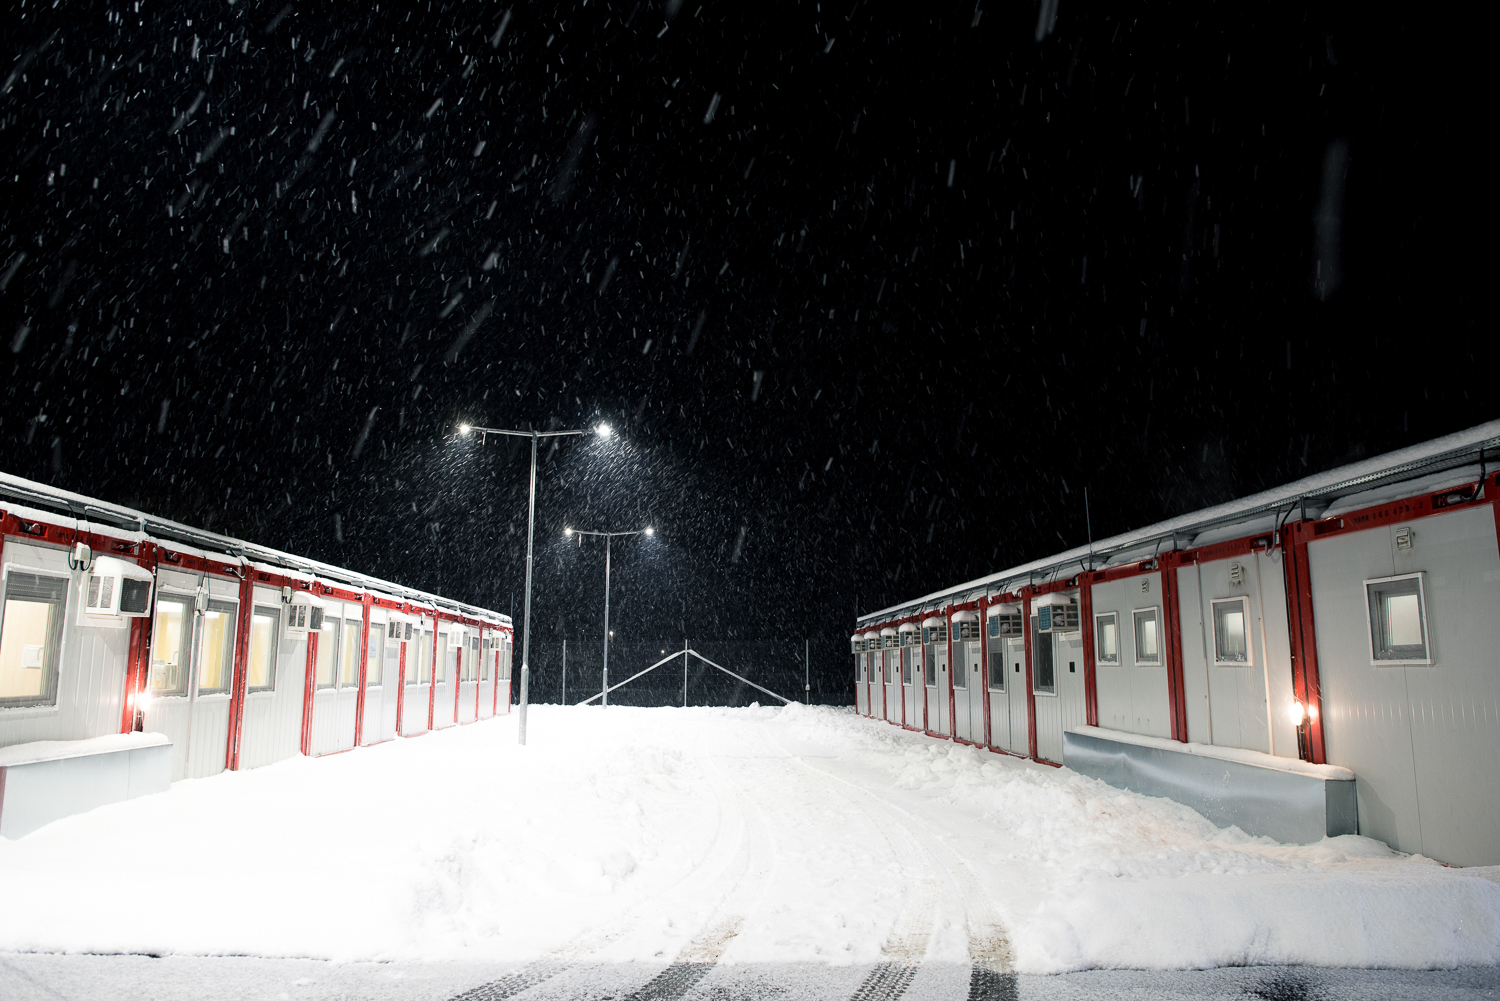 Border Protection Base during snowfall at Hercegszántó, Hungary 27 February 2018.  The fence was constructed in the middle of the European migration crisis in 2015, with the aim to ensure border security by preventing immigrants from entering the country and the European Union illegally.